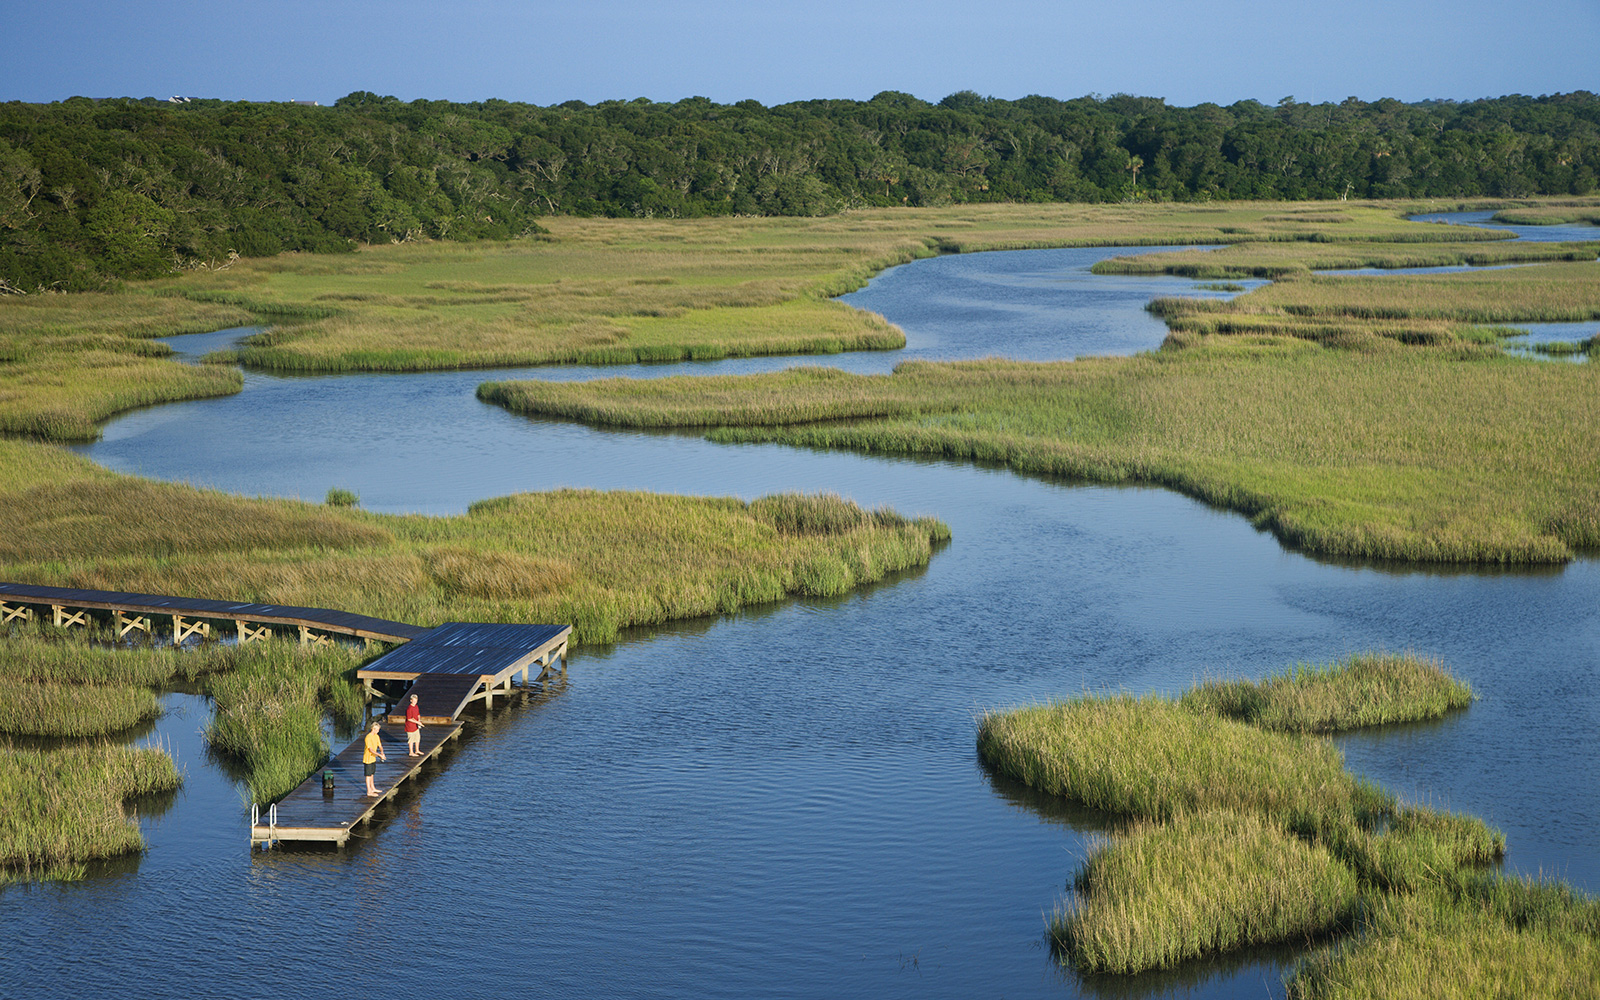 Aerial view of wetlands, with two people standing on a dock and trees in the background.